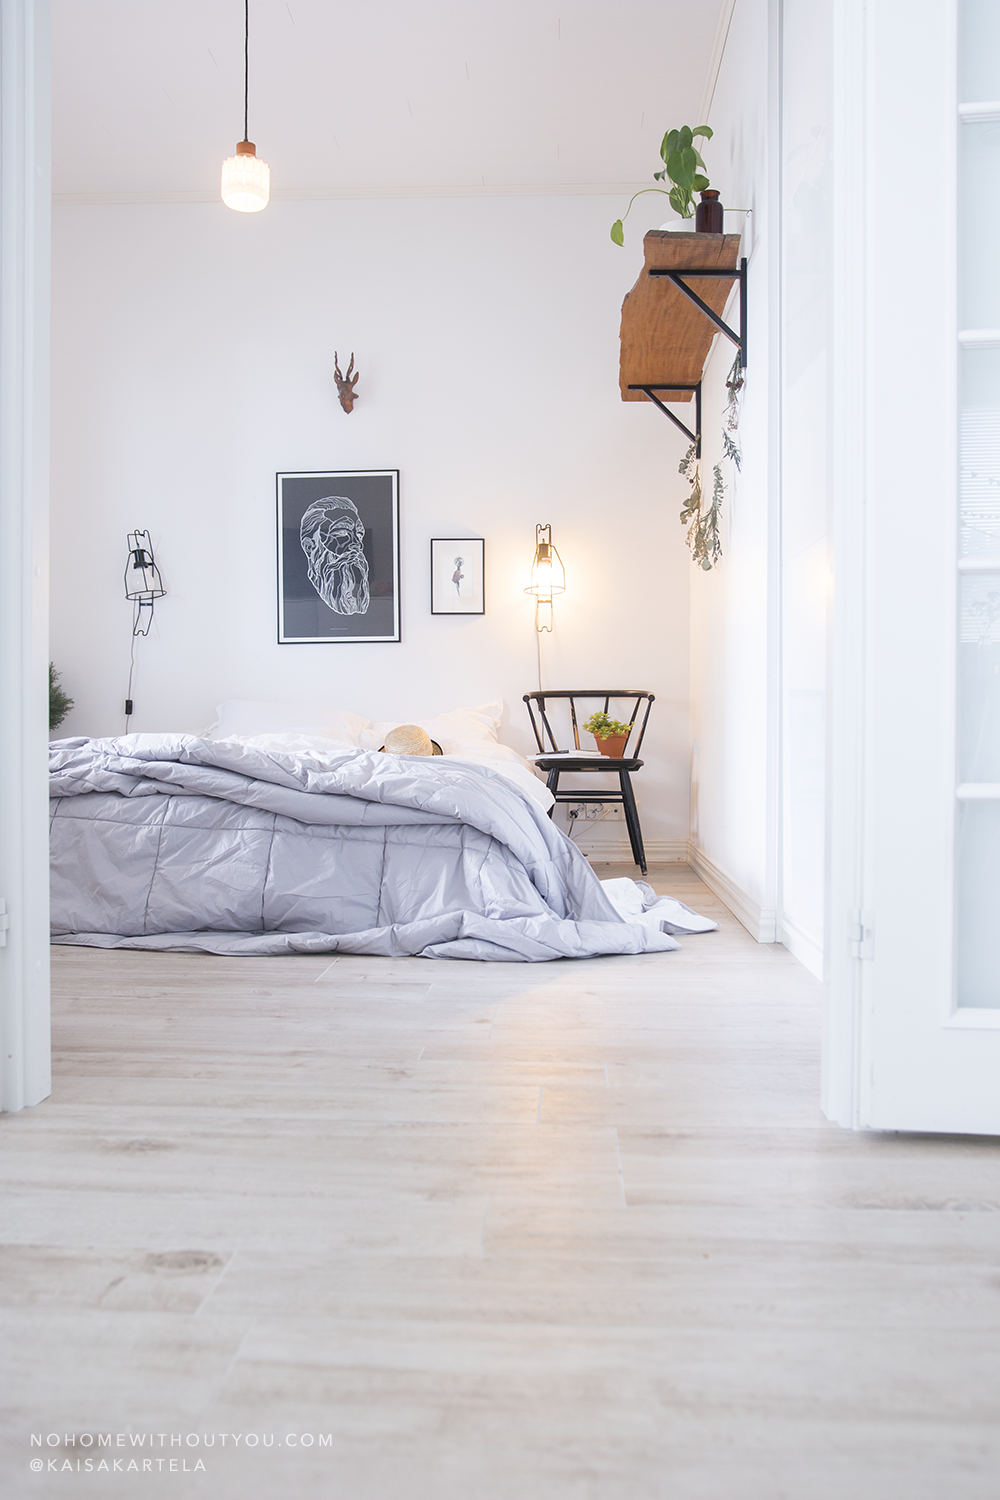 Bedroom Interior - No Home Without you - 9